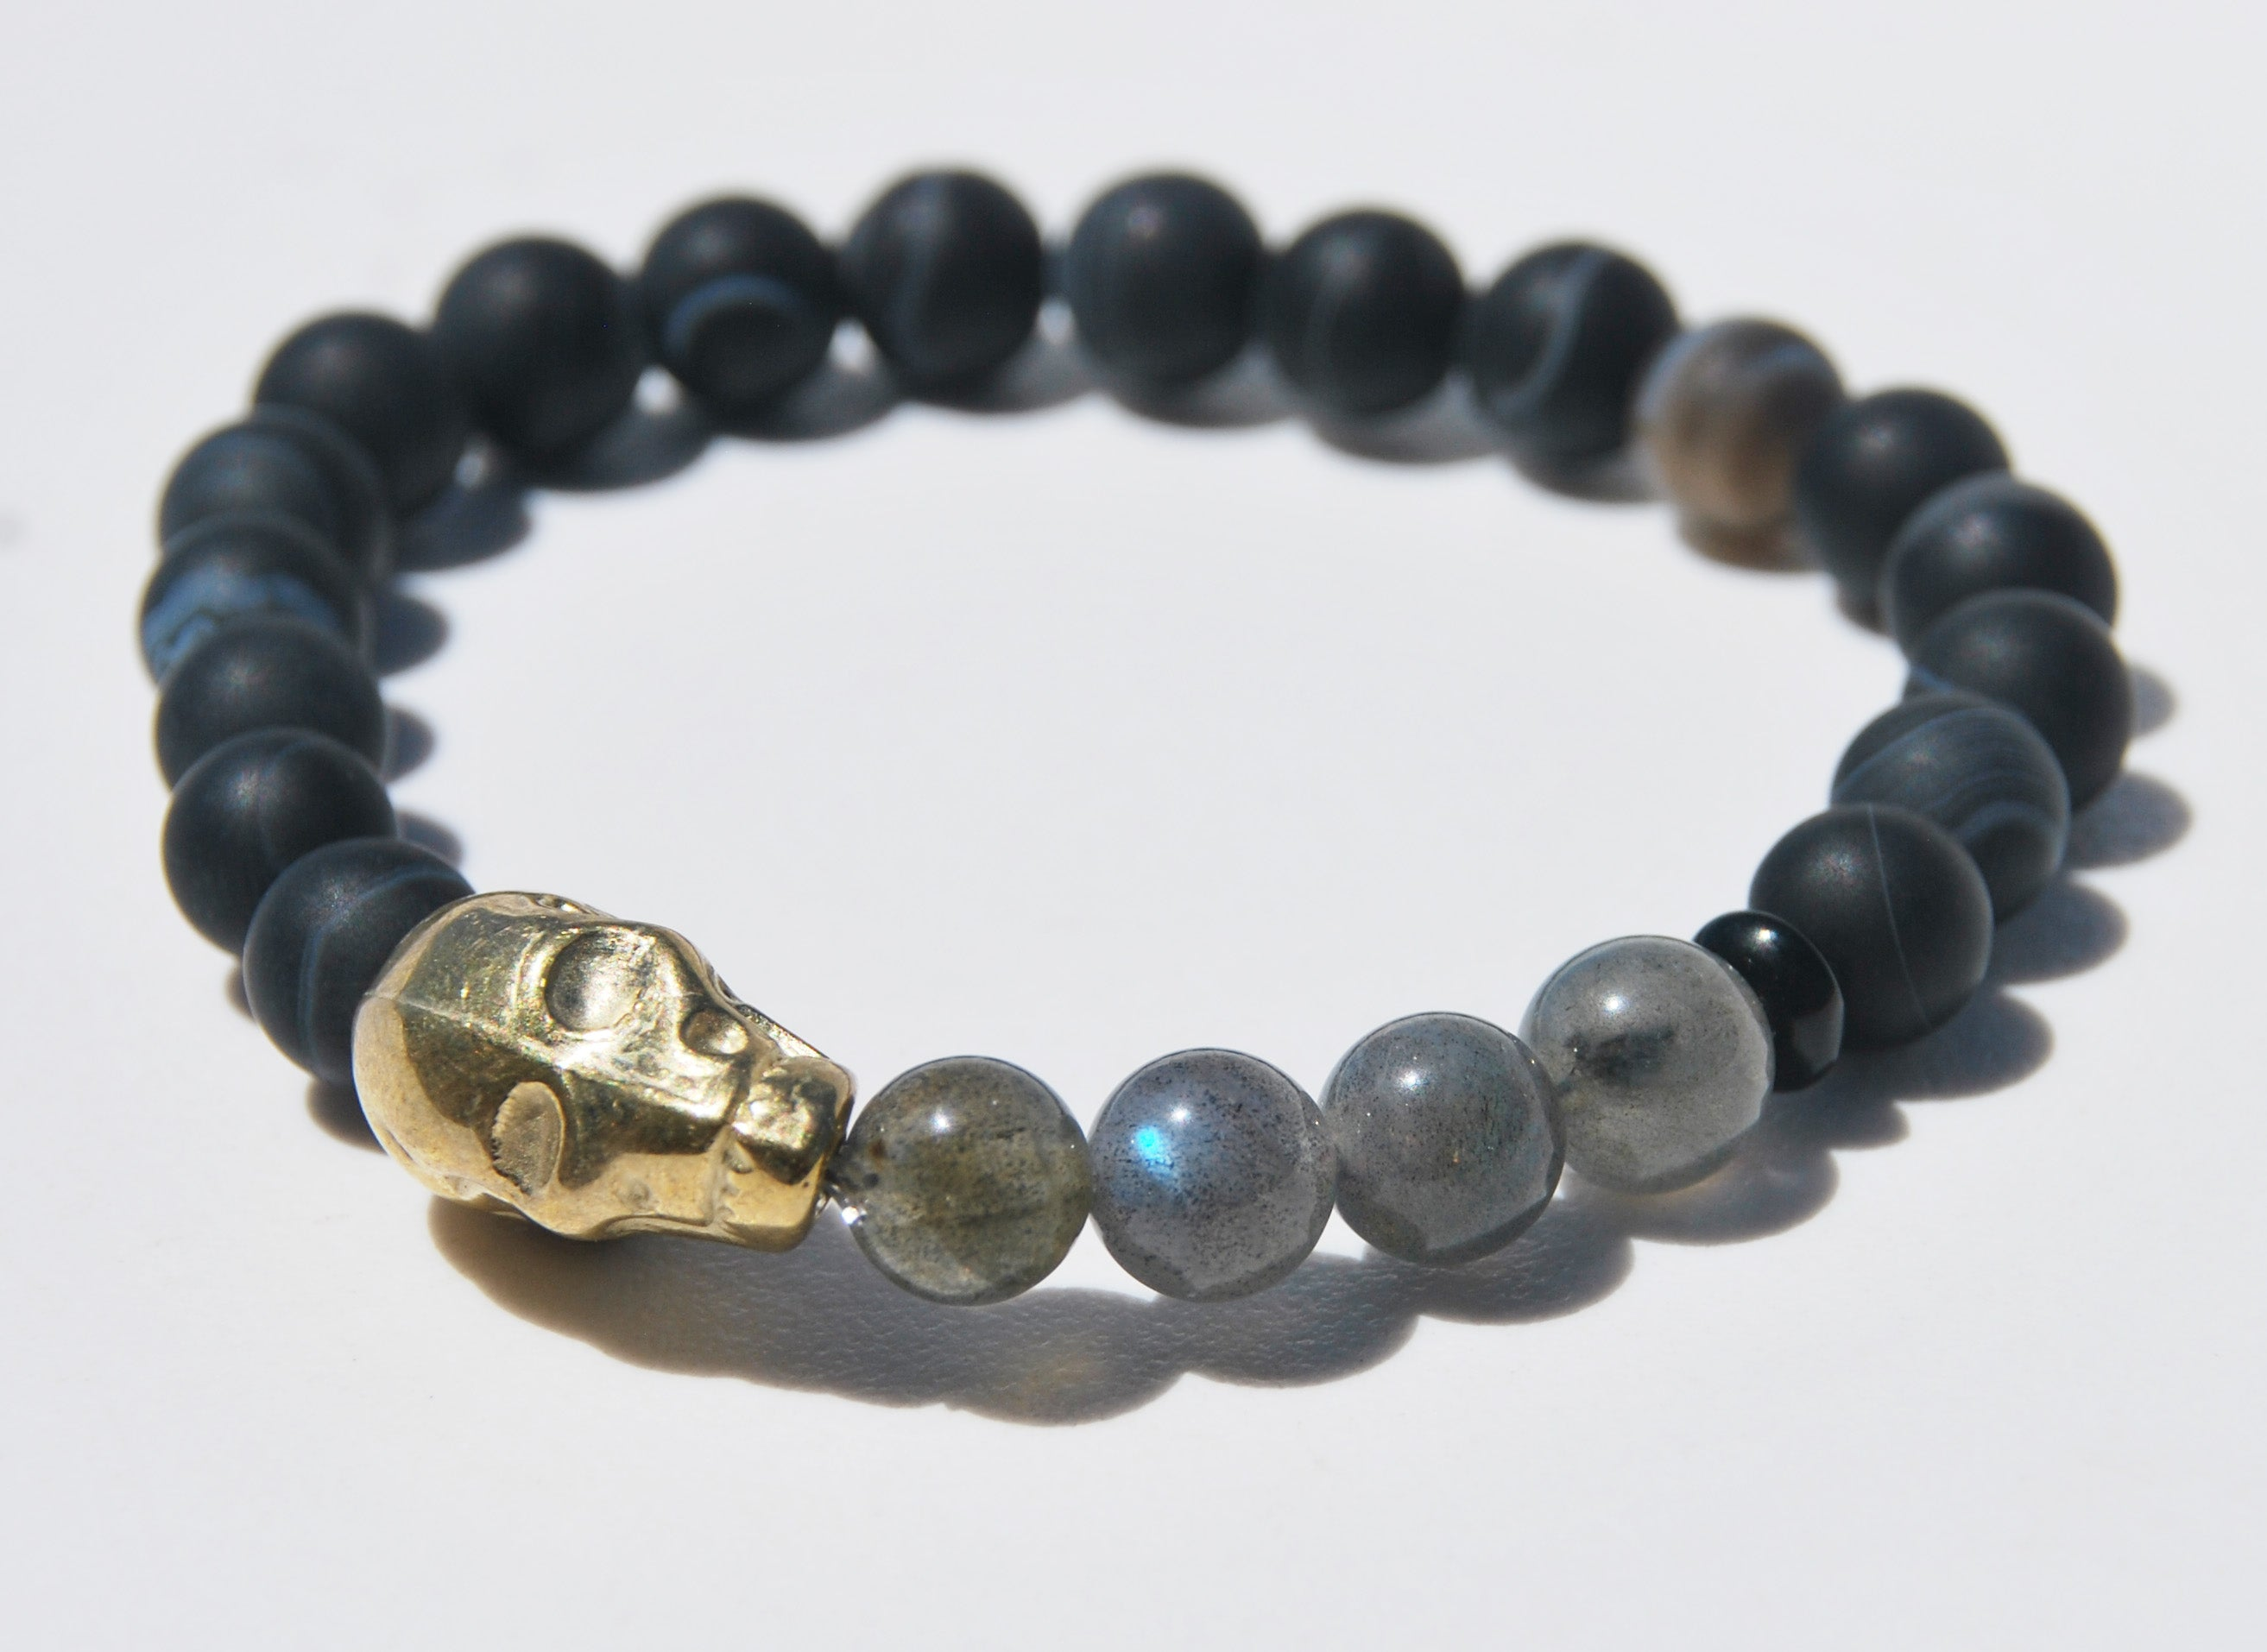 Matte Sardonox and Labradorite with Large Alien Head Stretch Bracelet